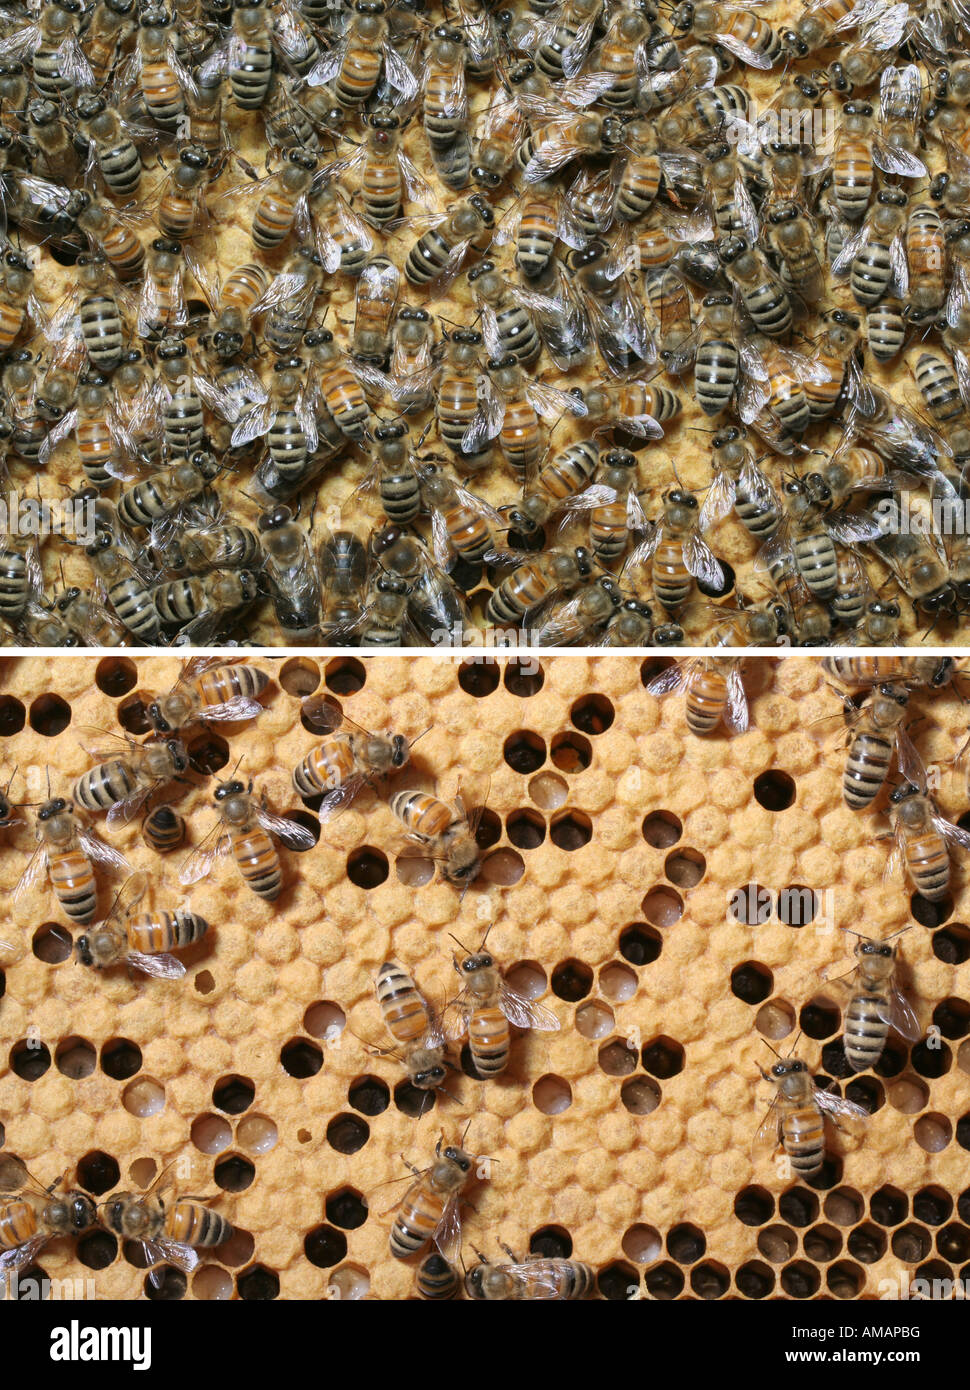 Colony collapse disorder: Top, Healthy hive; Bottom, CCD. - Stock Image